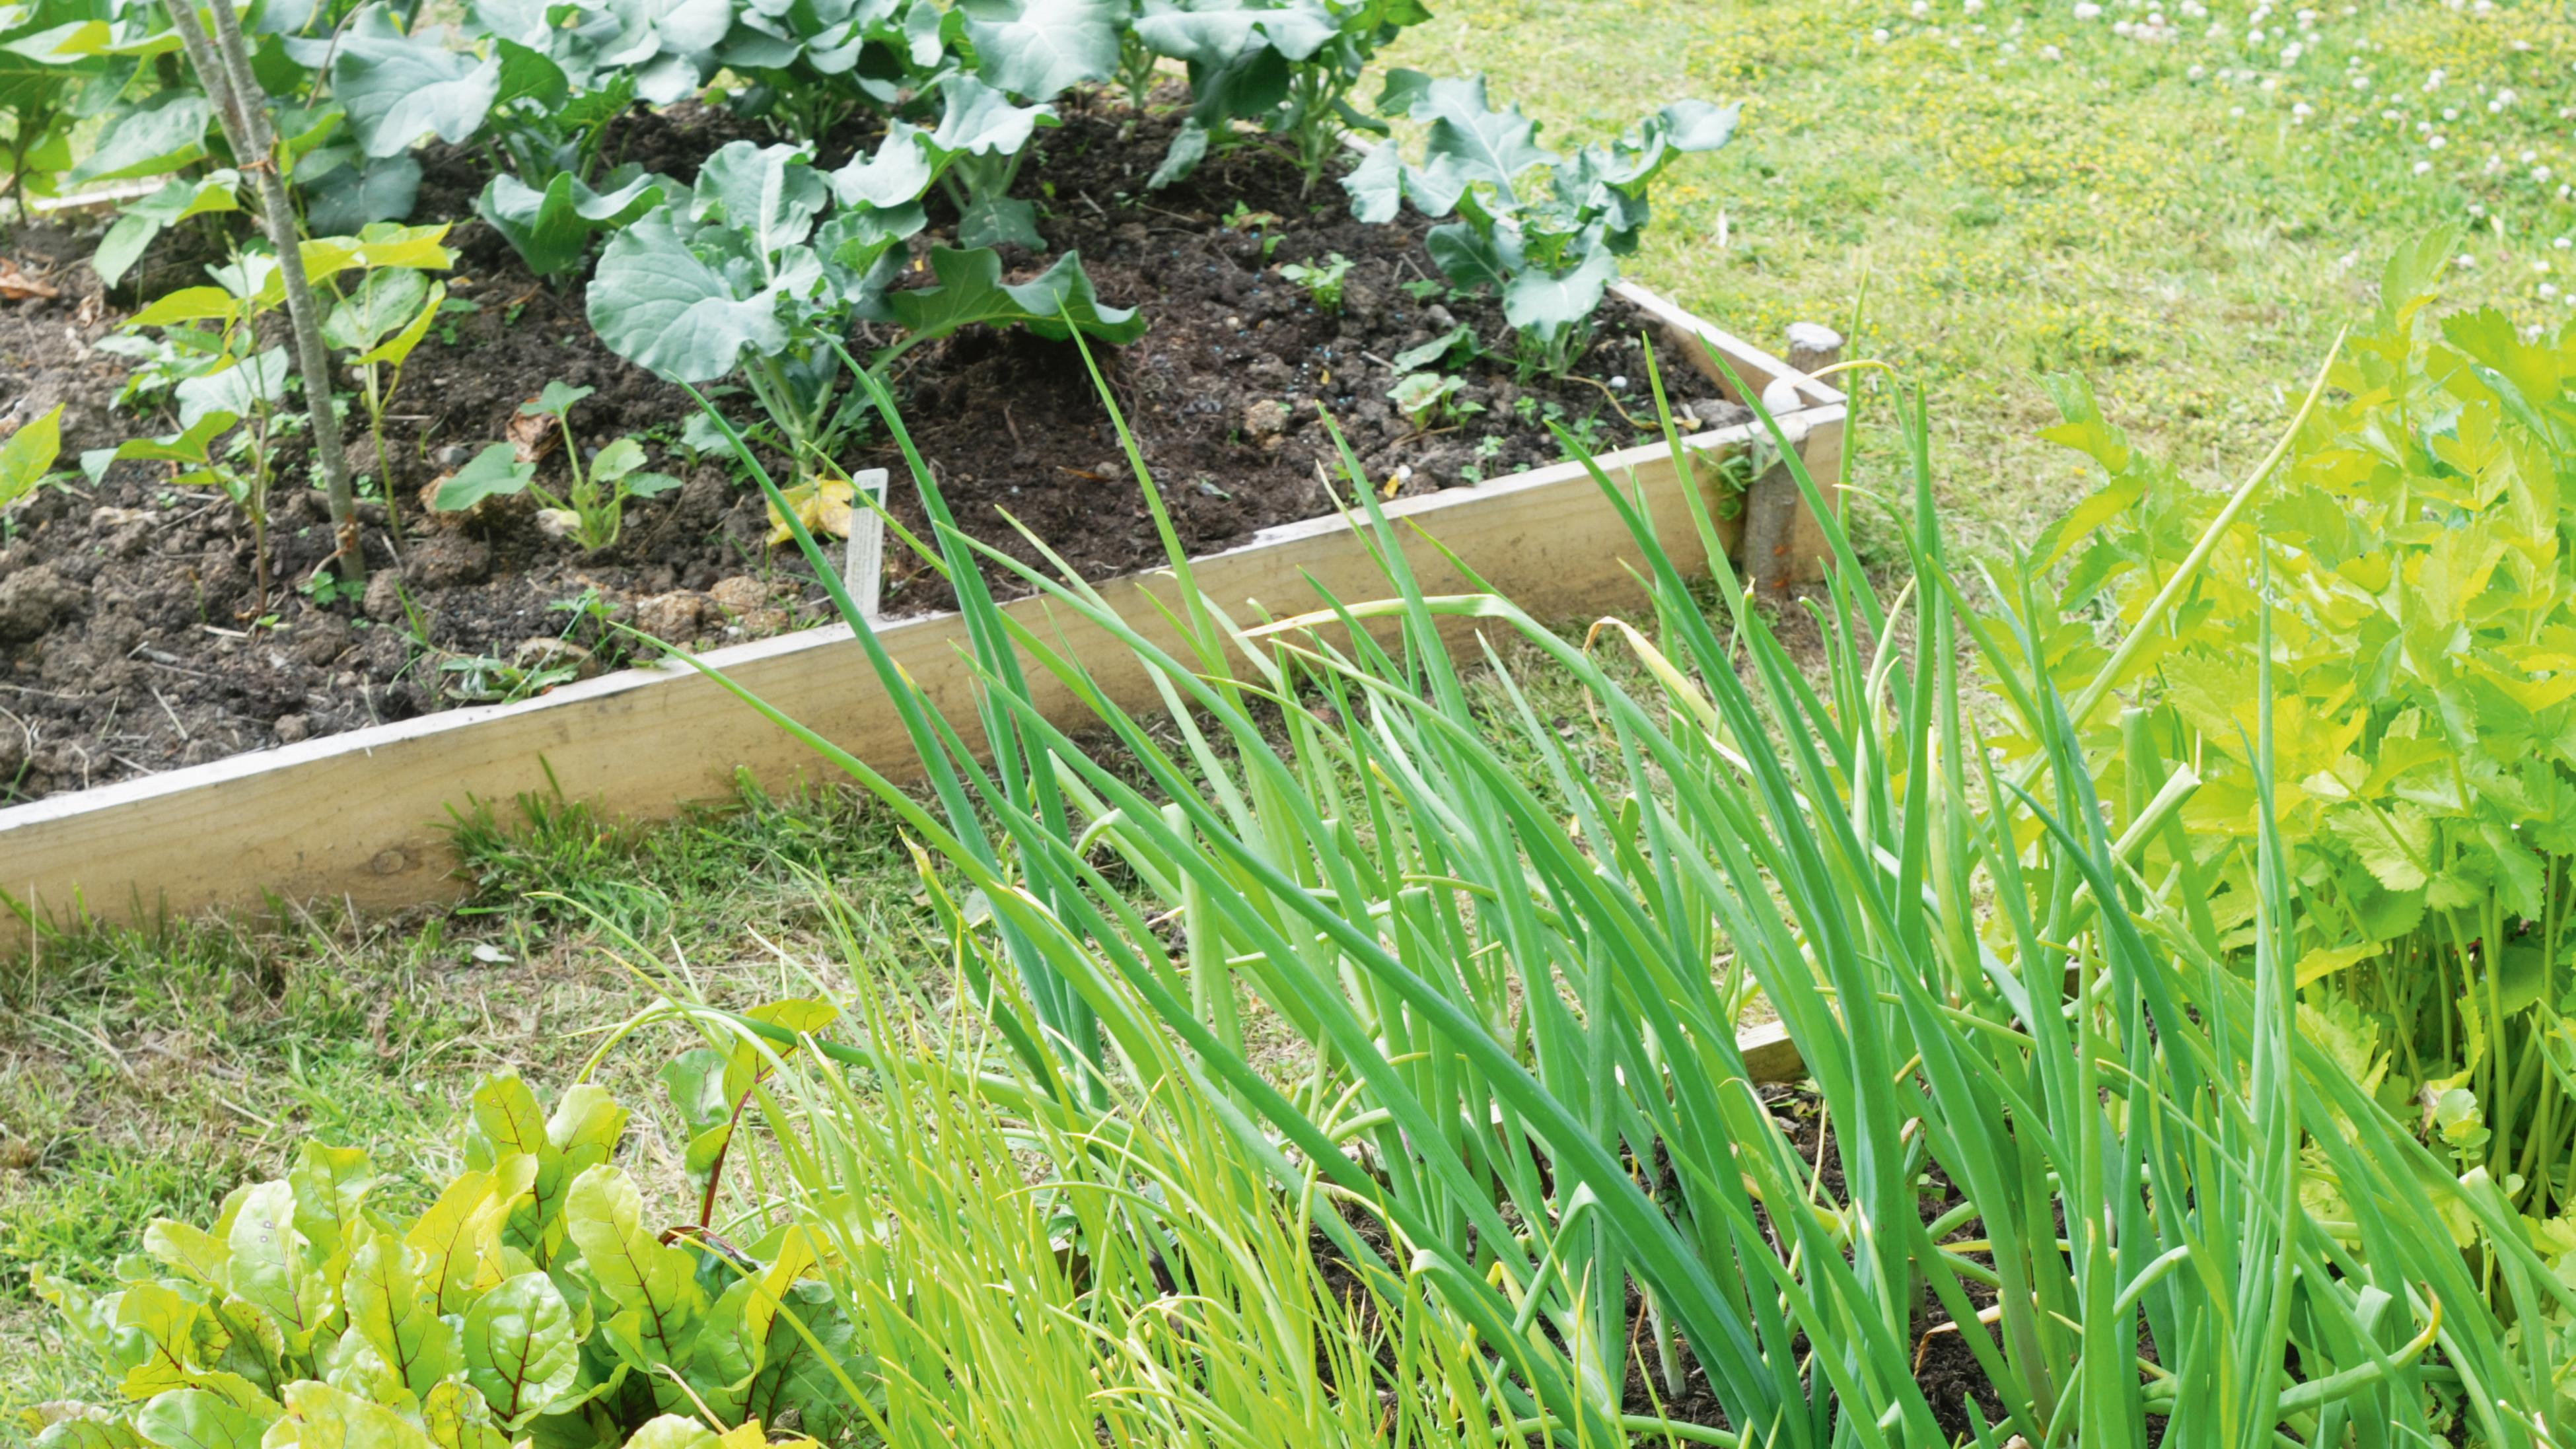 Raised garden bed used to grow vegetables